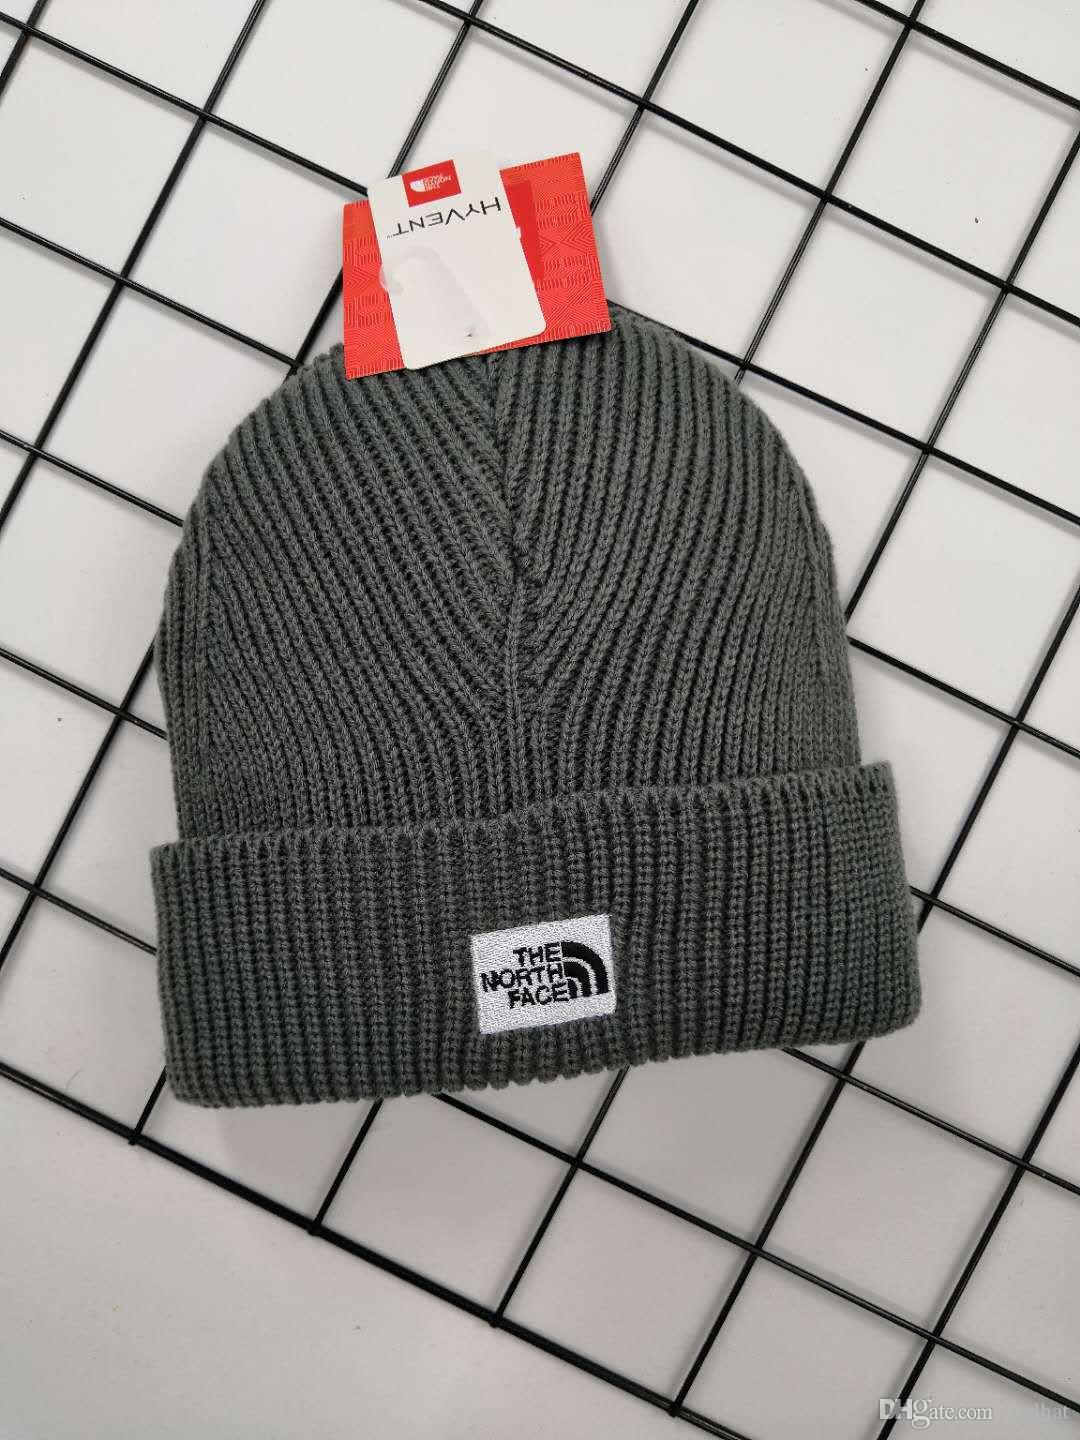 6bf0c8f661b 2018 Fashion Beanies Brand NORTH Men Autumn Winter Hats Sport Knit Hat  Thicken Warm Casual Outdoor Hat Cap THE FACE Beanie Skull Caps Beanies Hat  Online ...